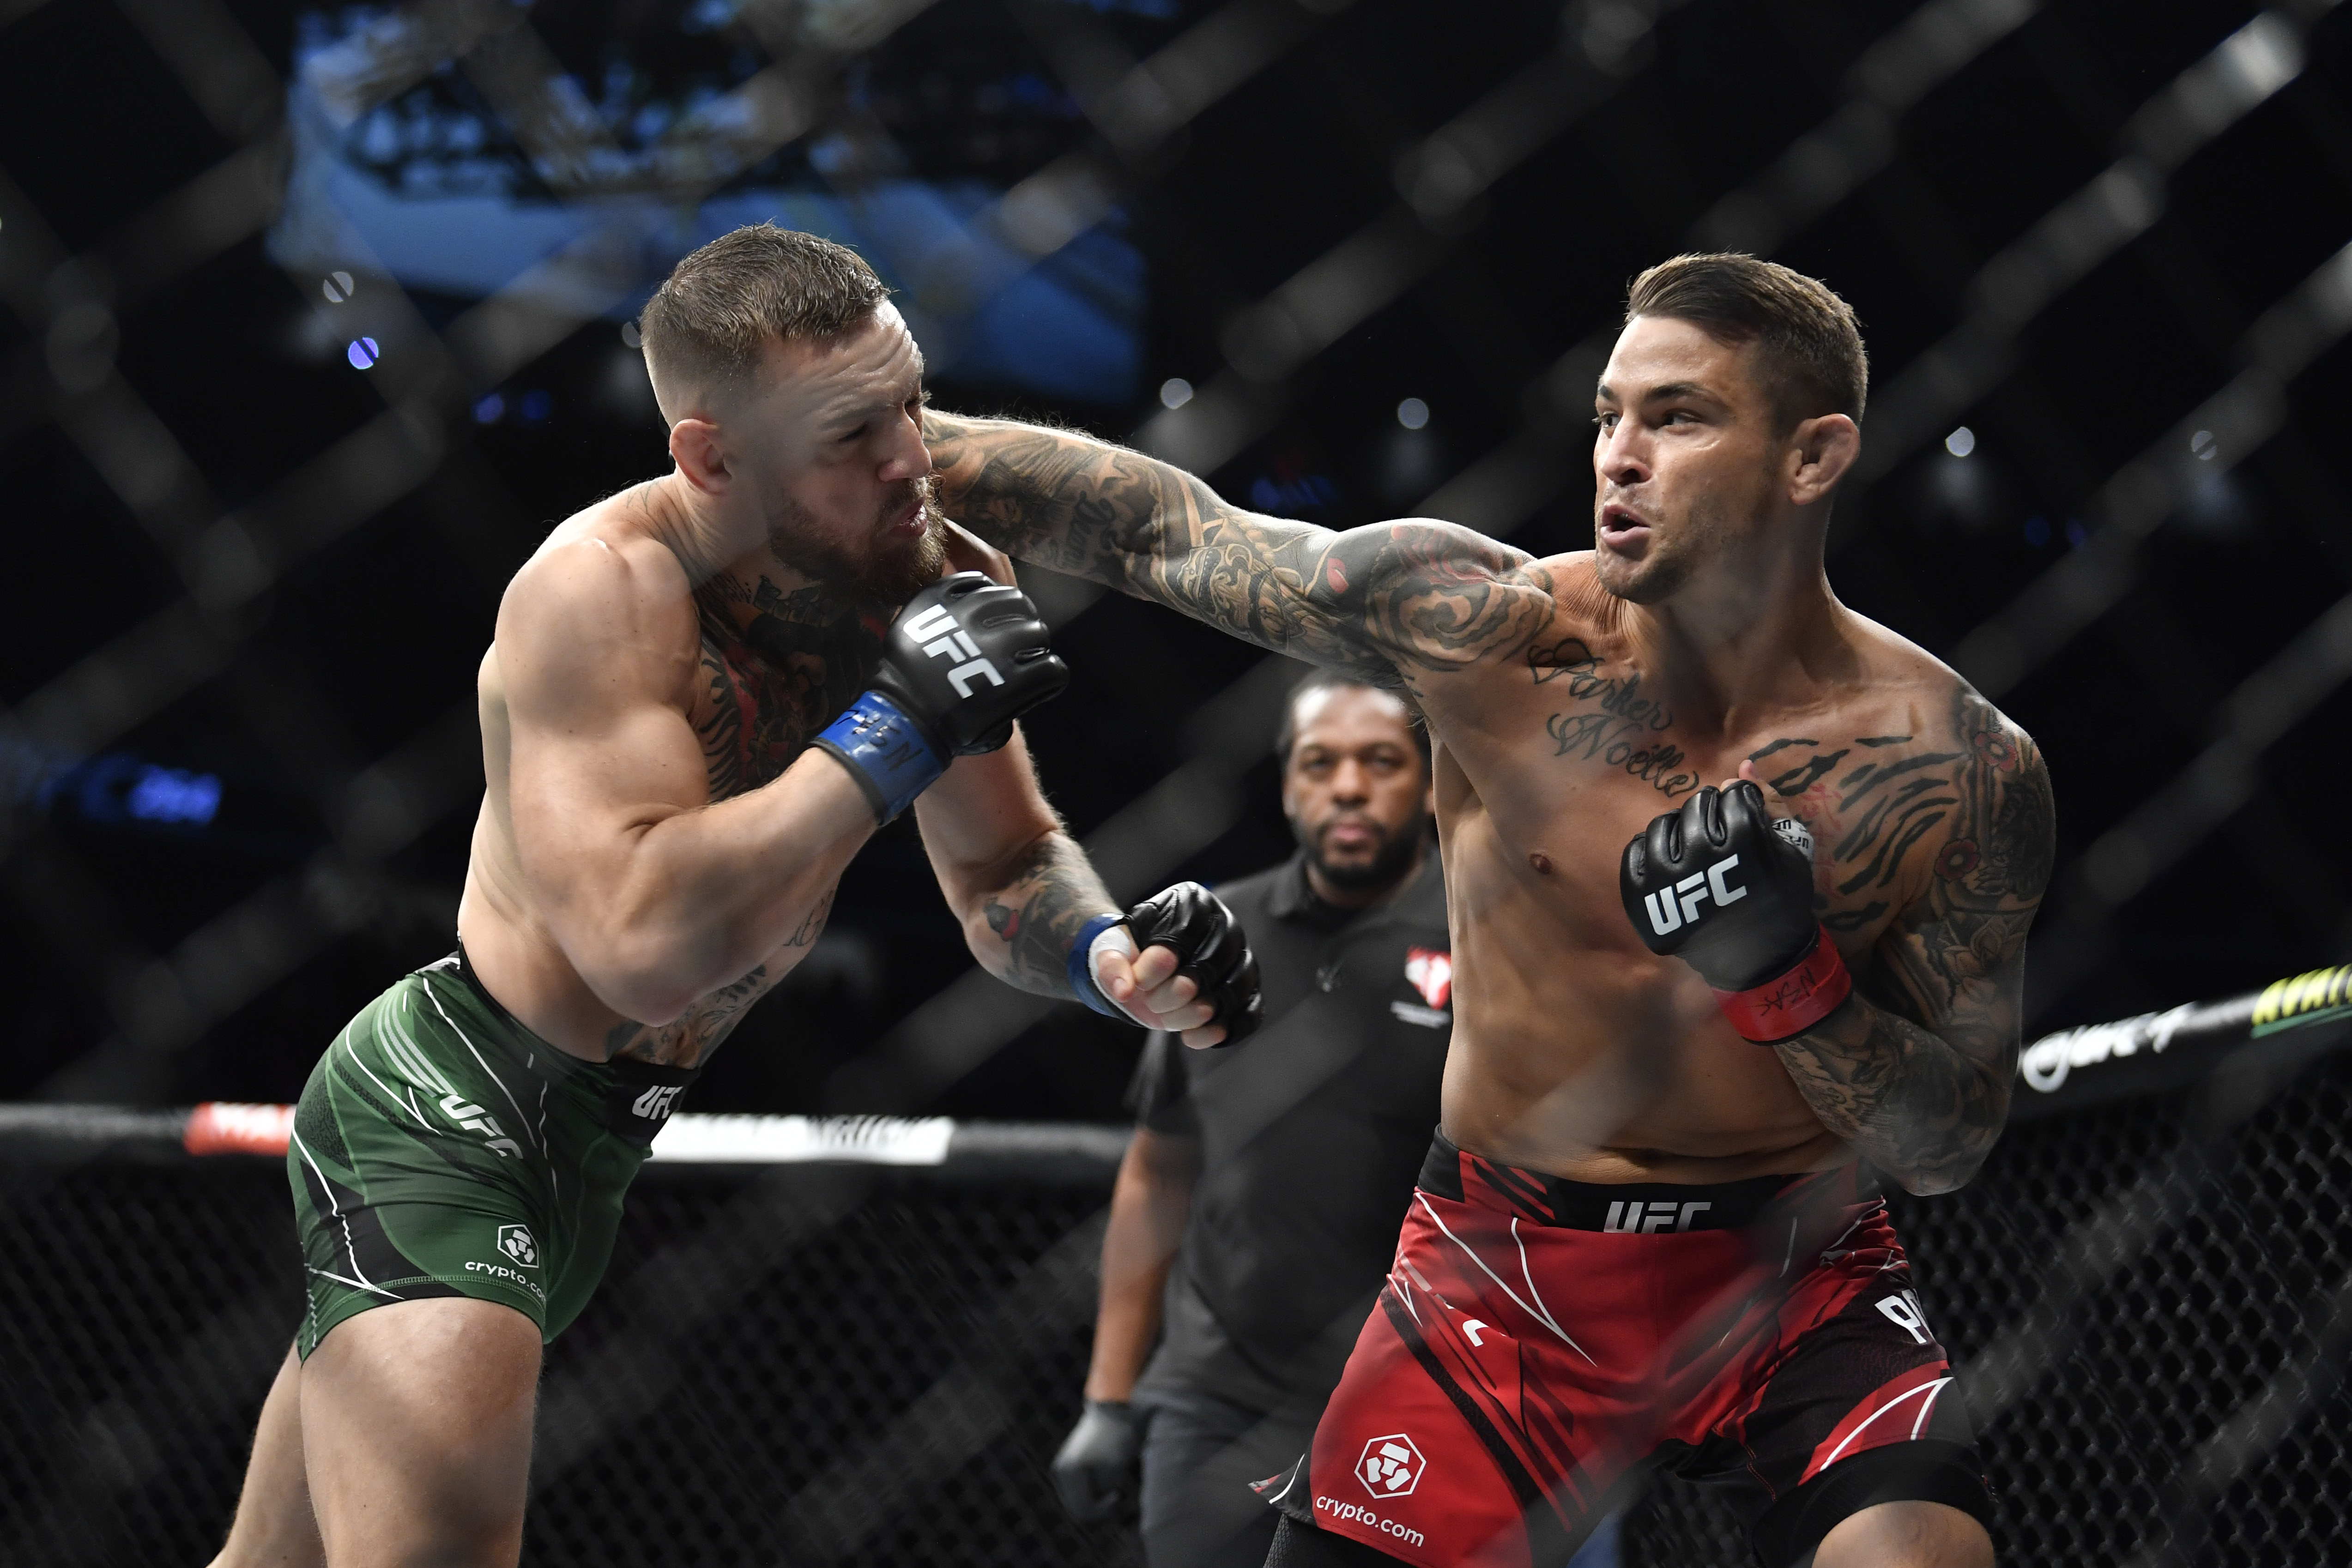 Dustin Poirier during his third fight with Conor McGregor at UFC 264.